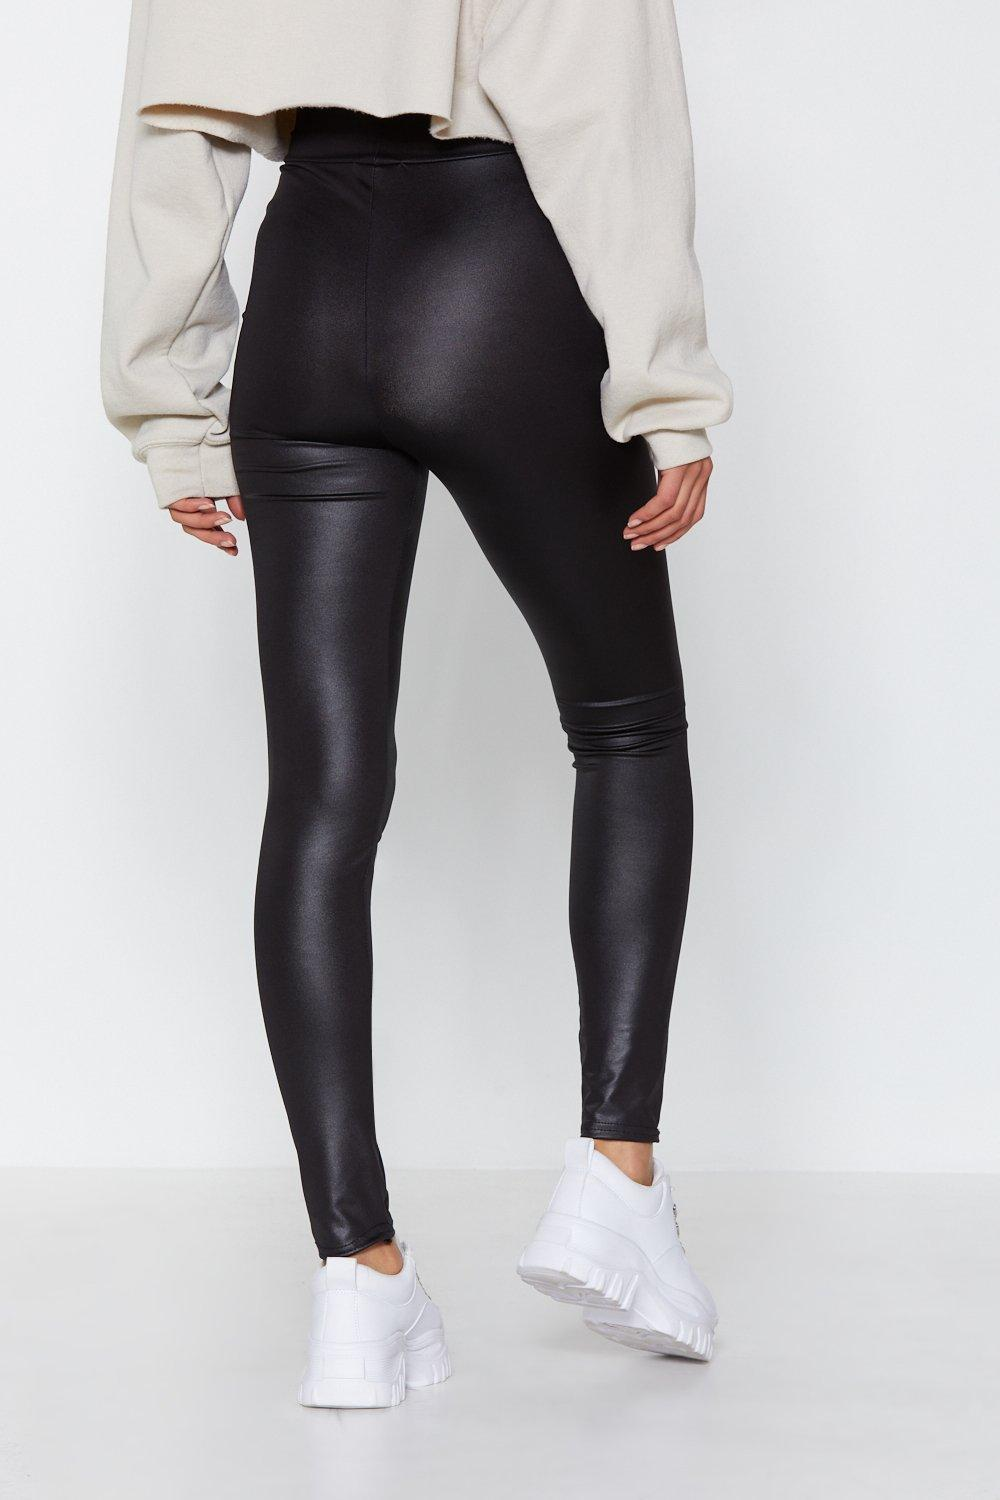 30c58965a48c Wet Do You Know High-Waisted Leggings   Shop Clothes at Nasty Gal!